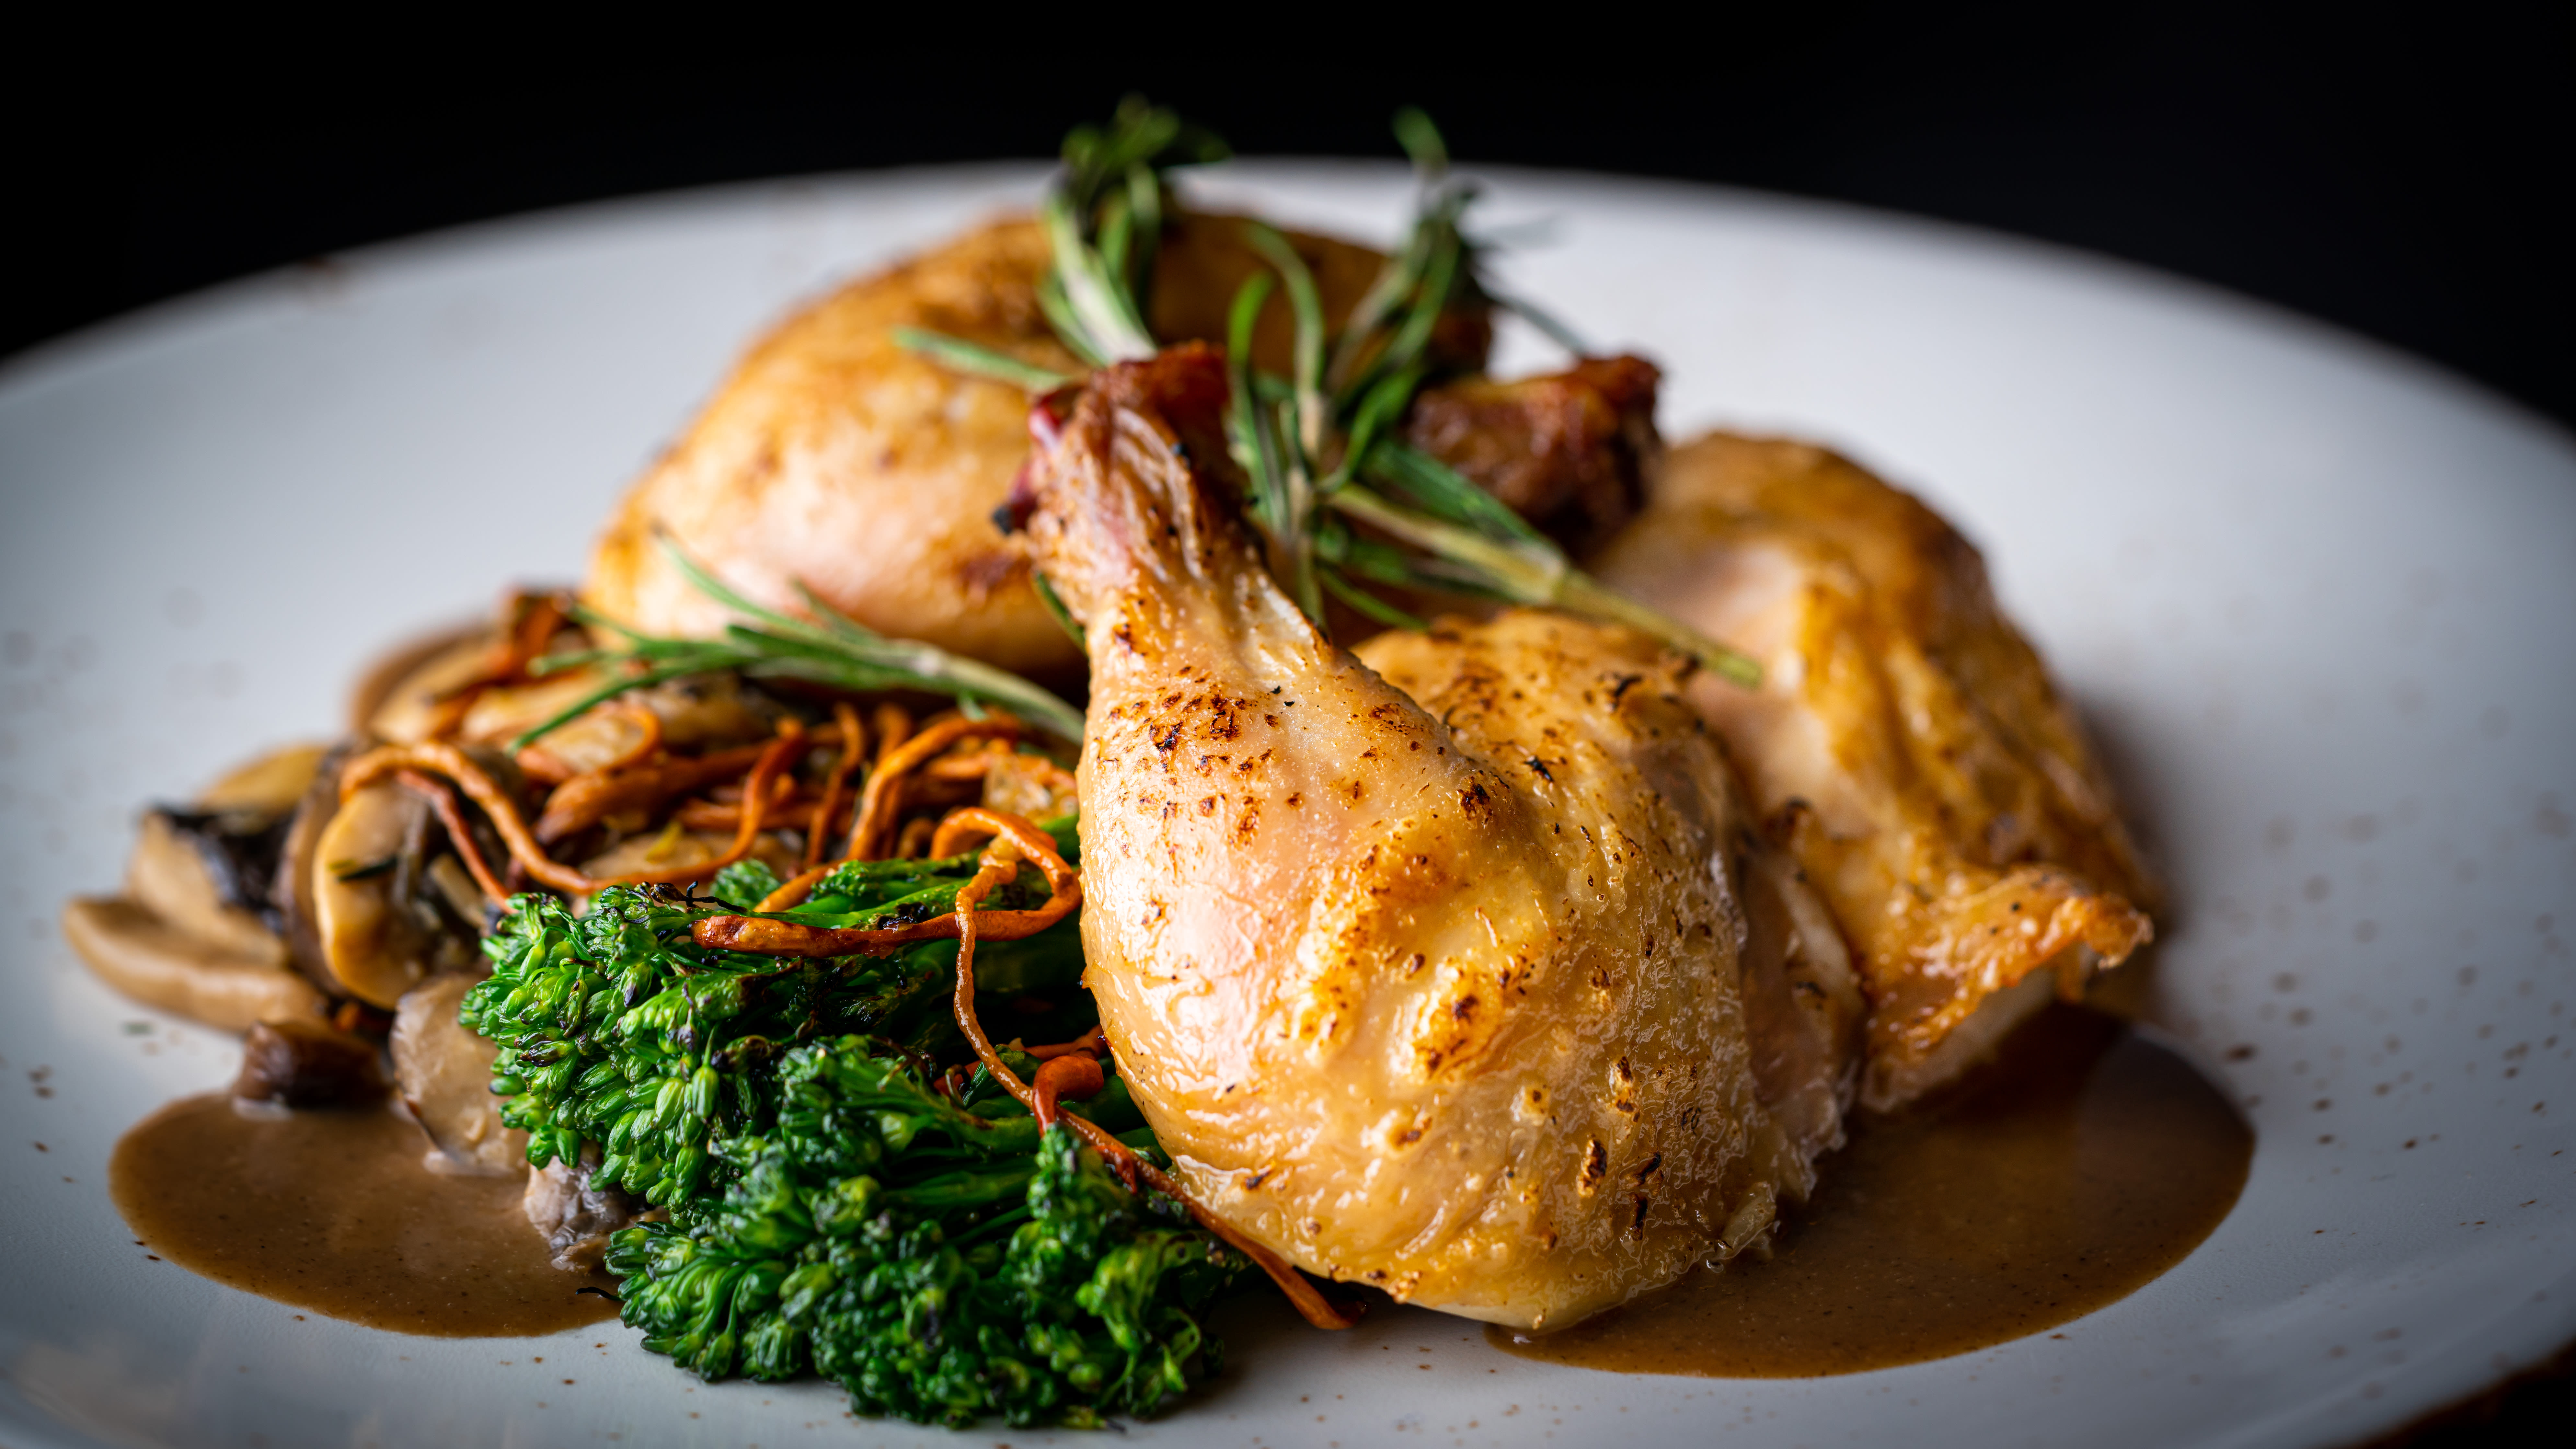 Rustic chicken dish at The Springs at Sunnyview in Salem, Oregon